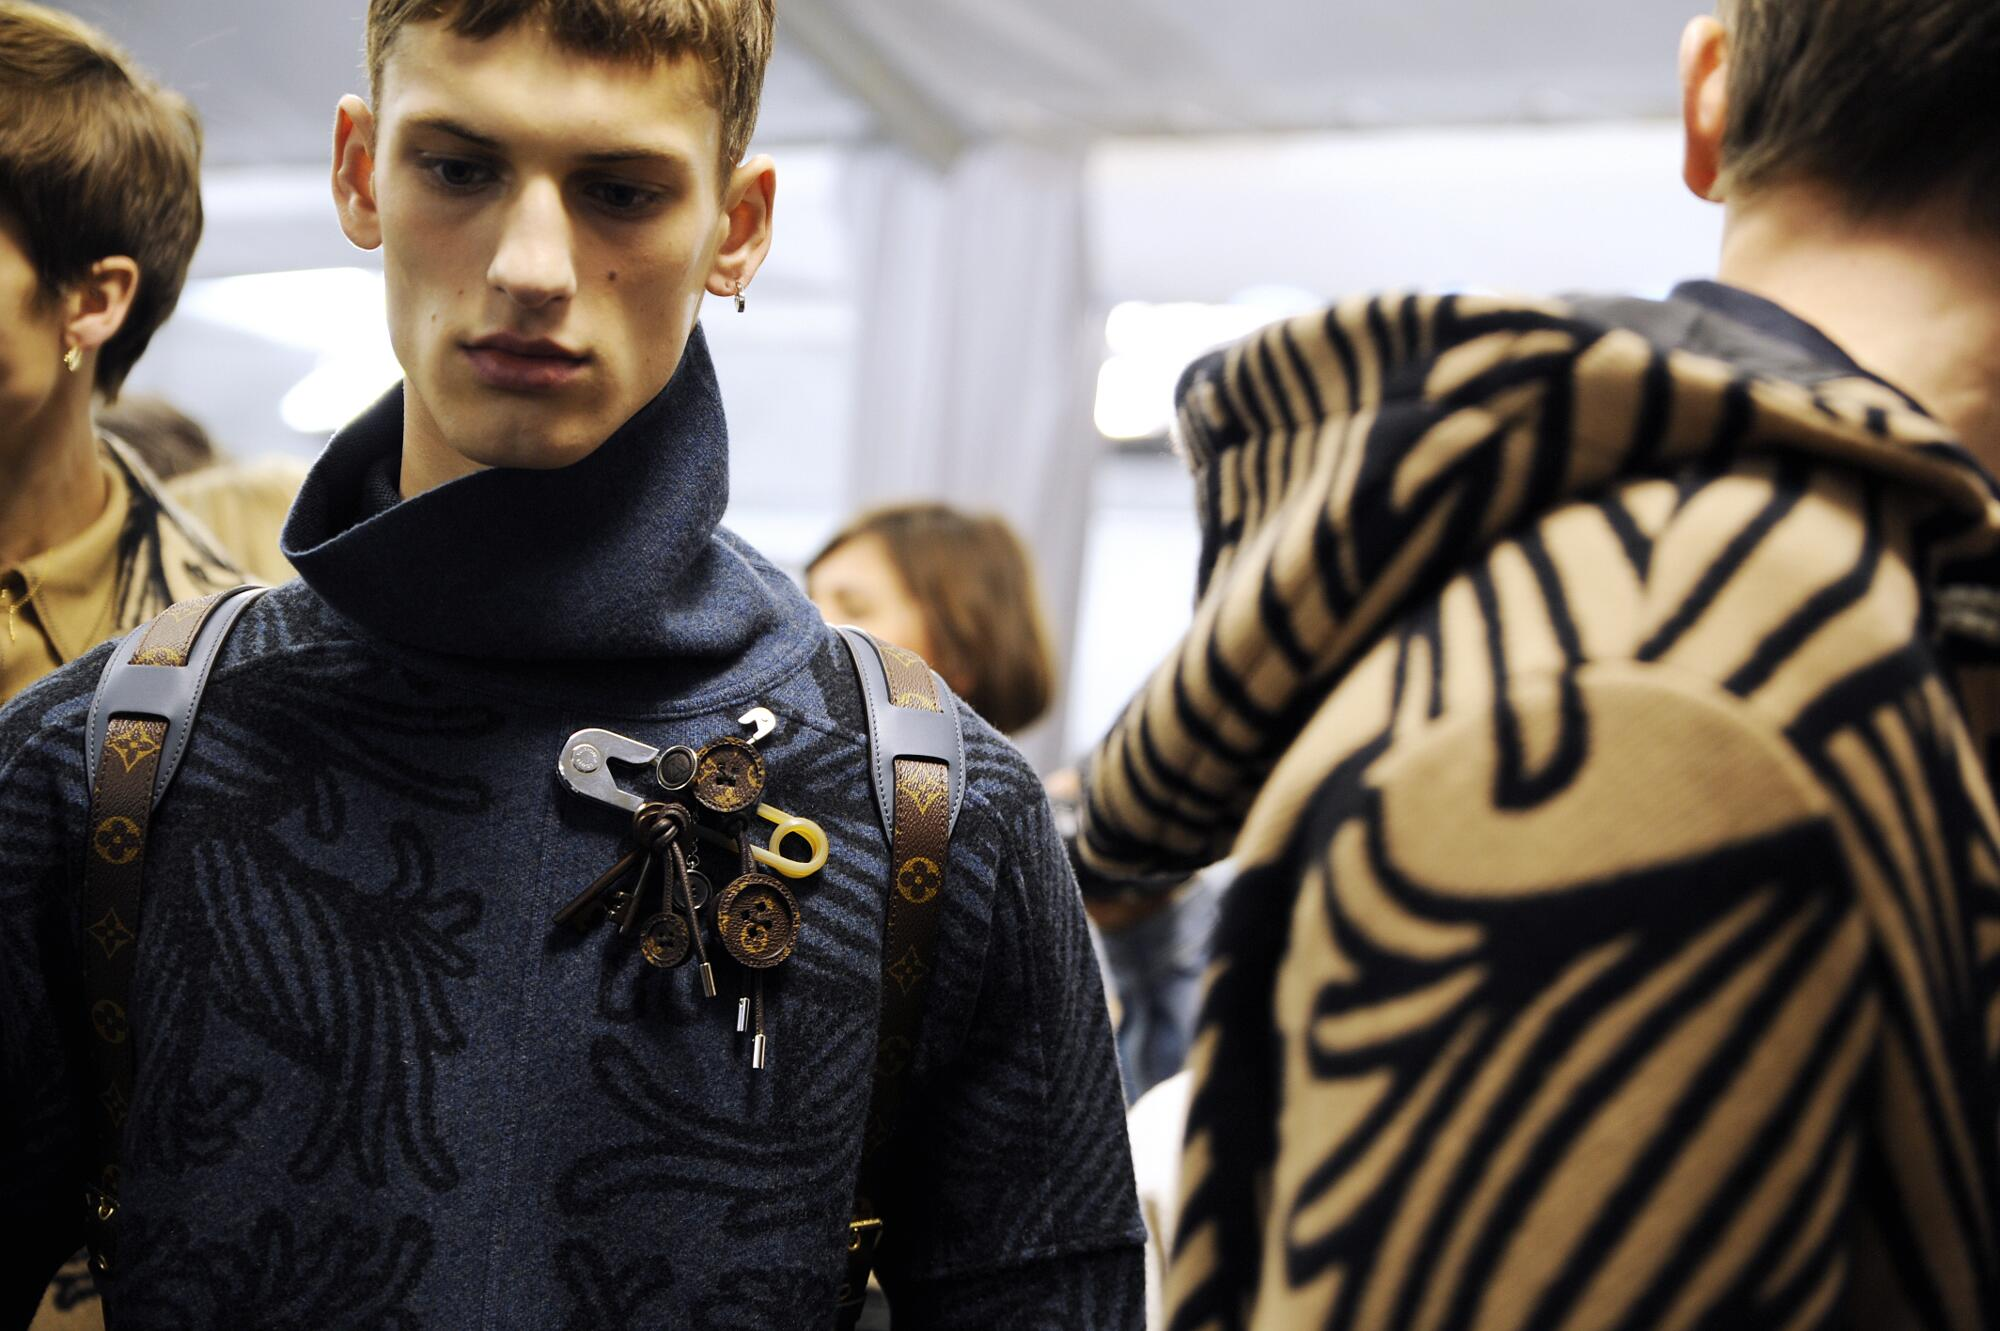 Models Louis Vuitton Backstage Fall Winter 2015 Paris